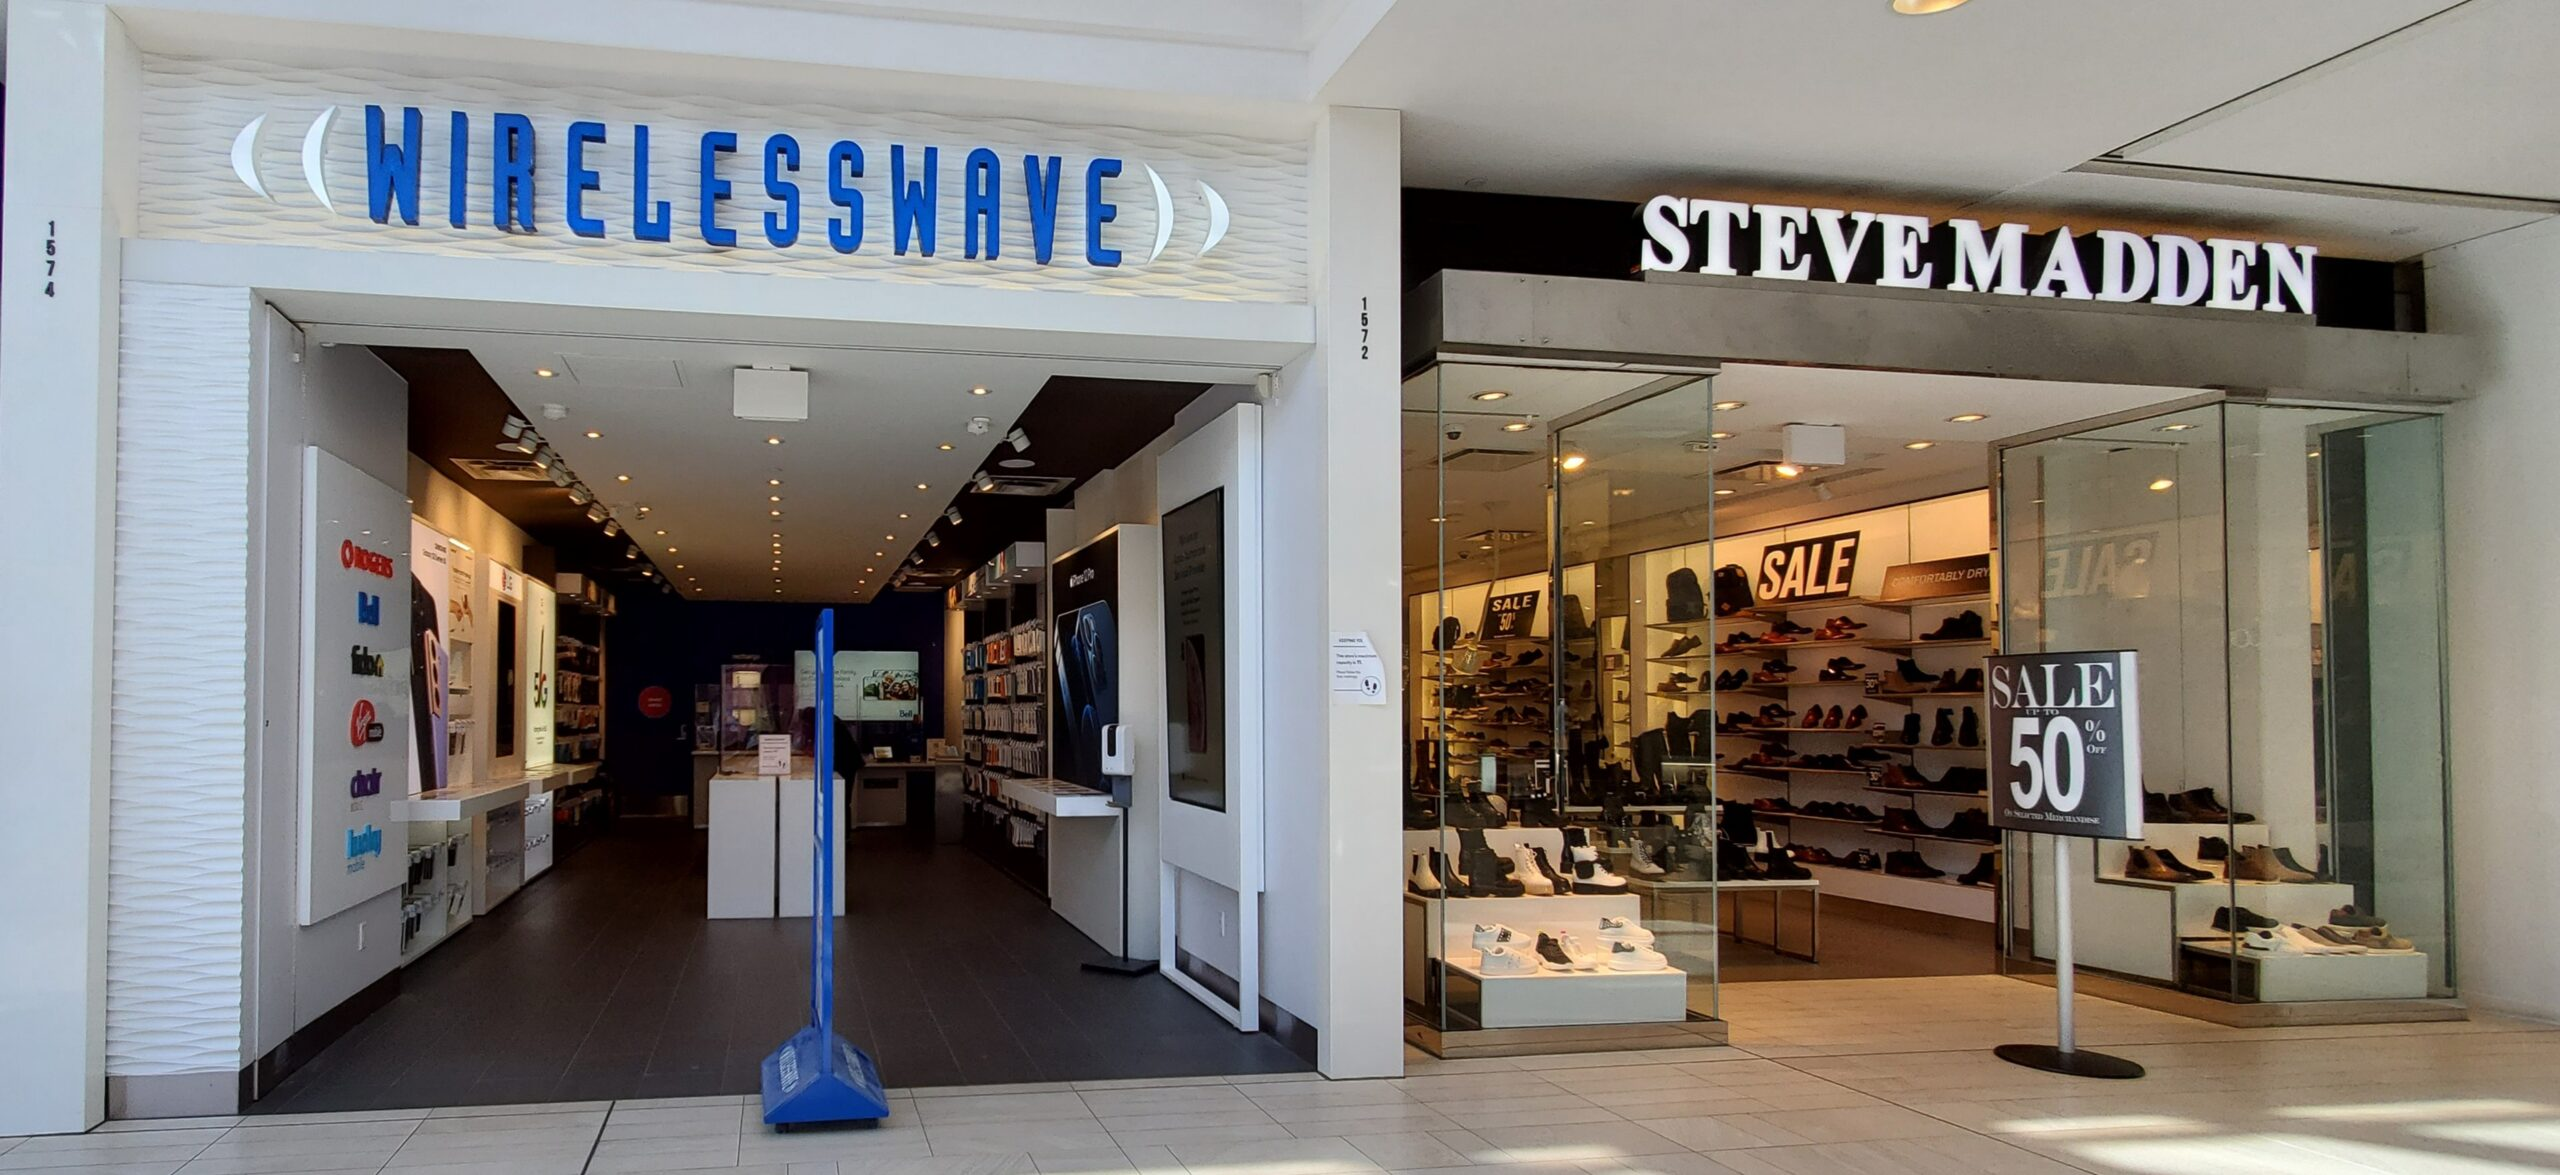 Steve Madden and WirelessWave at CF Richmond Centre